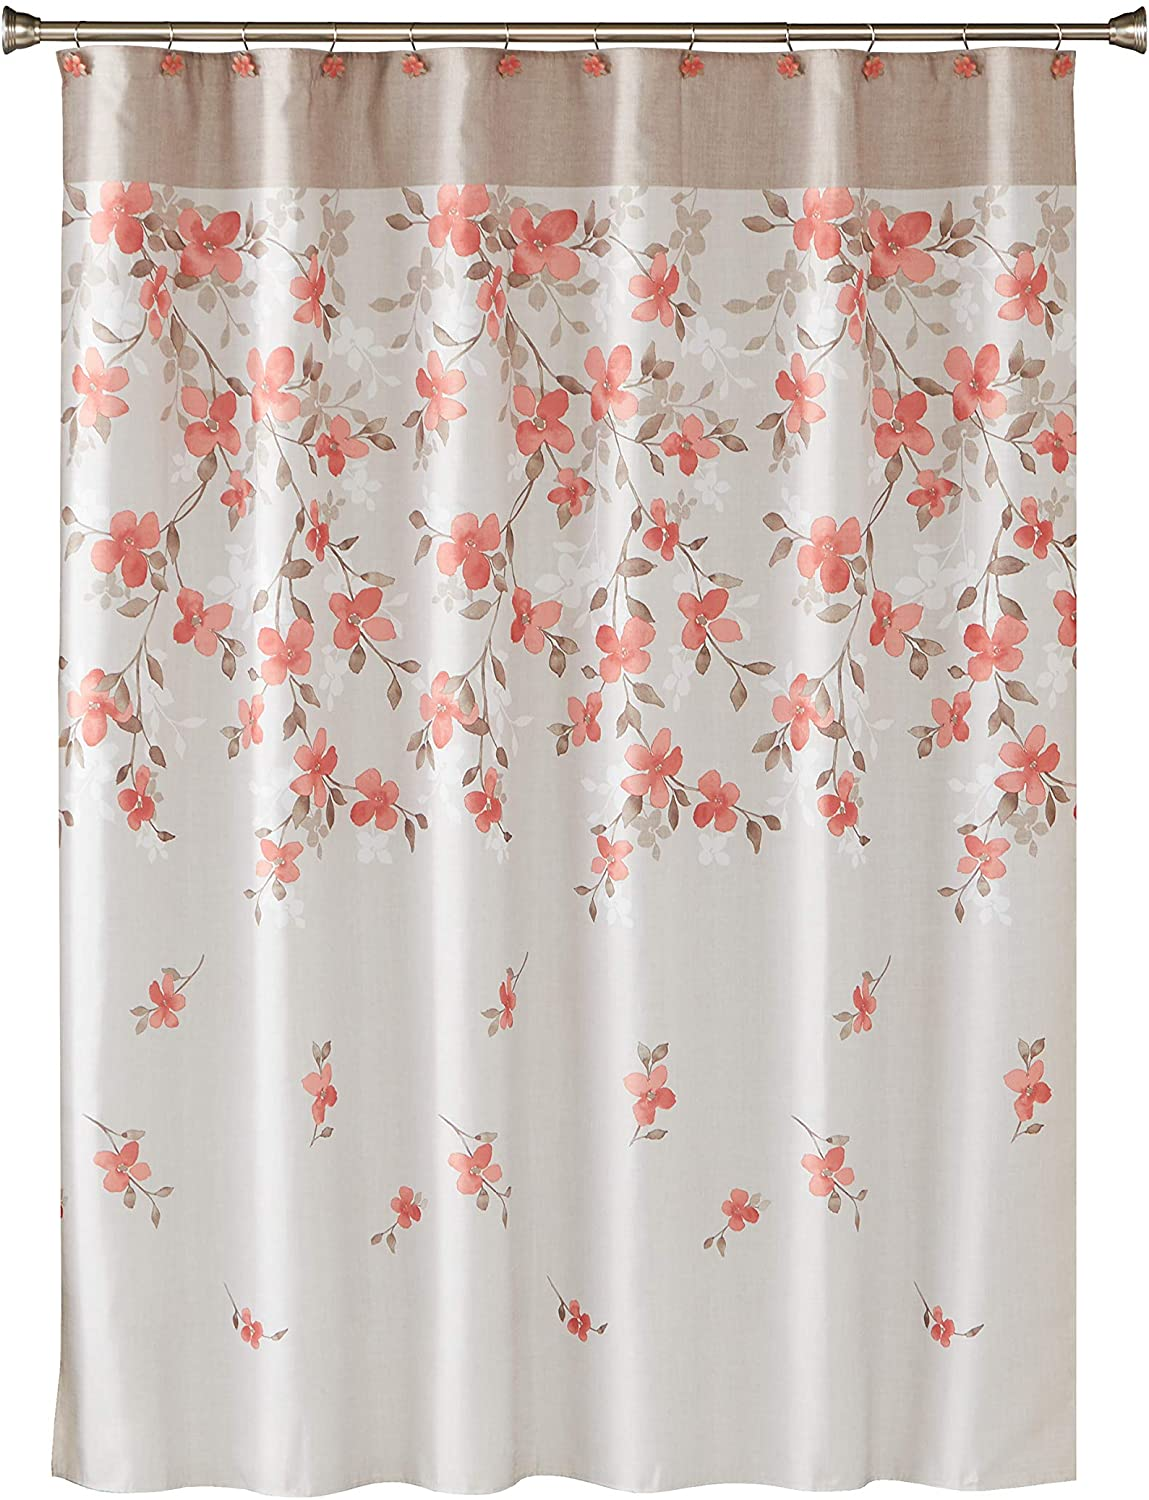 SKL Home by Saturday Knight Ltd. Coral Garden Floral Fabric Shower Curtain, Coral